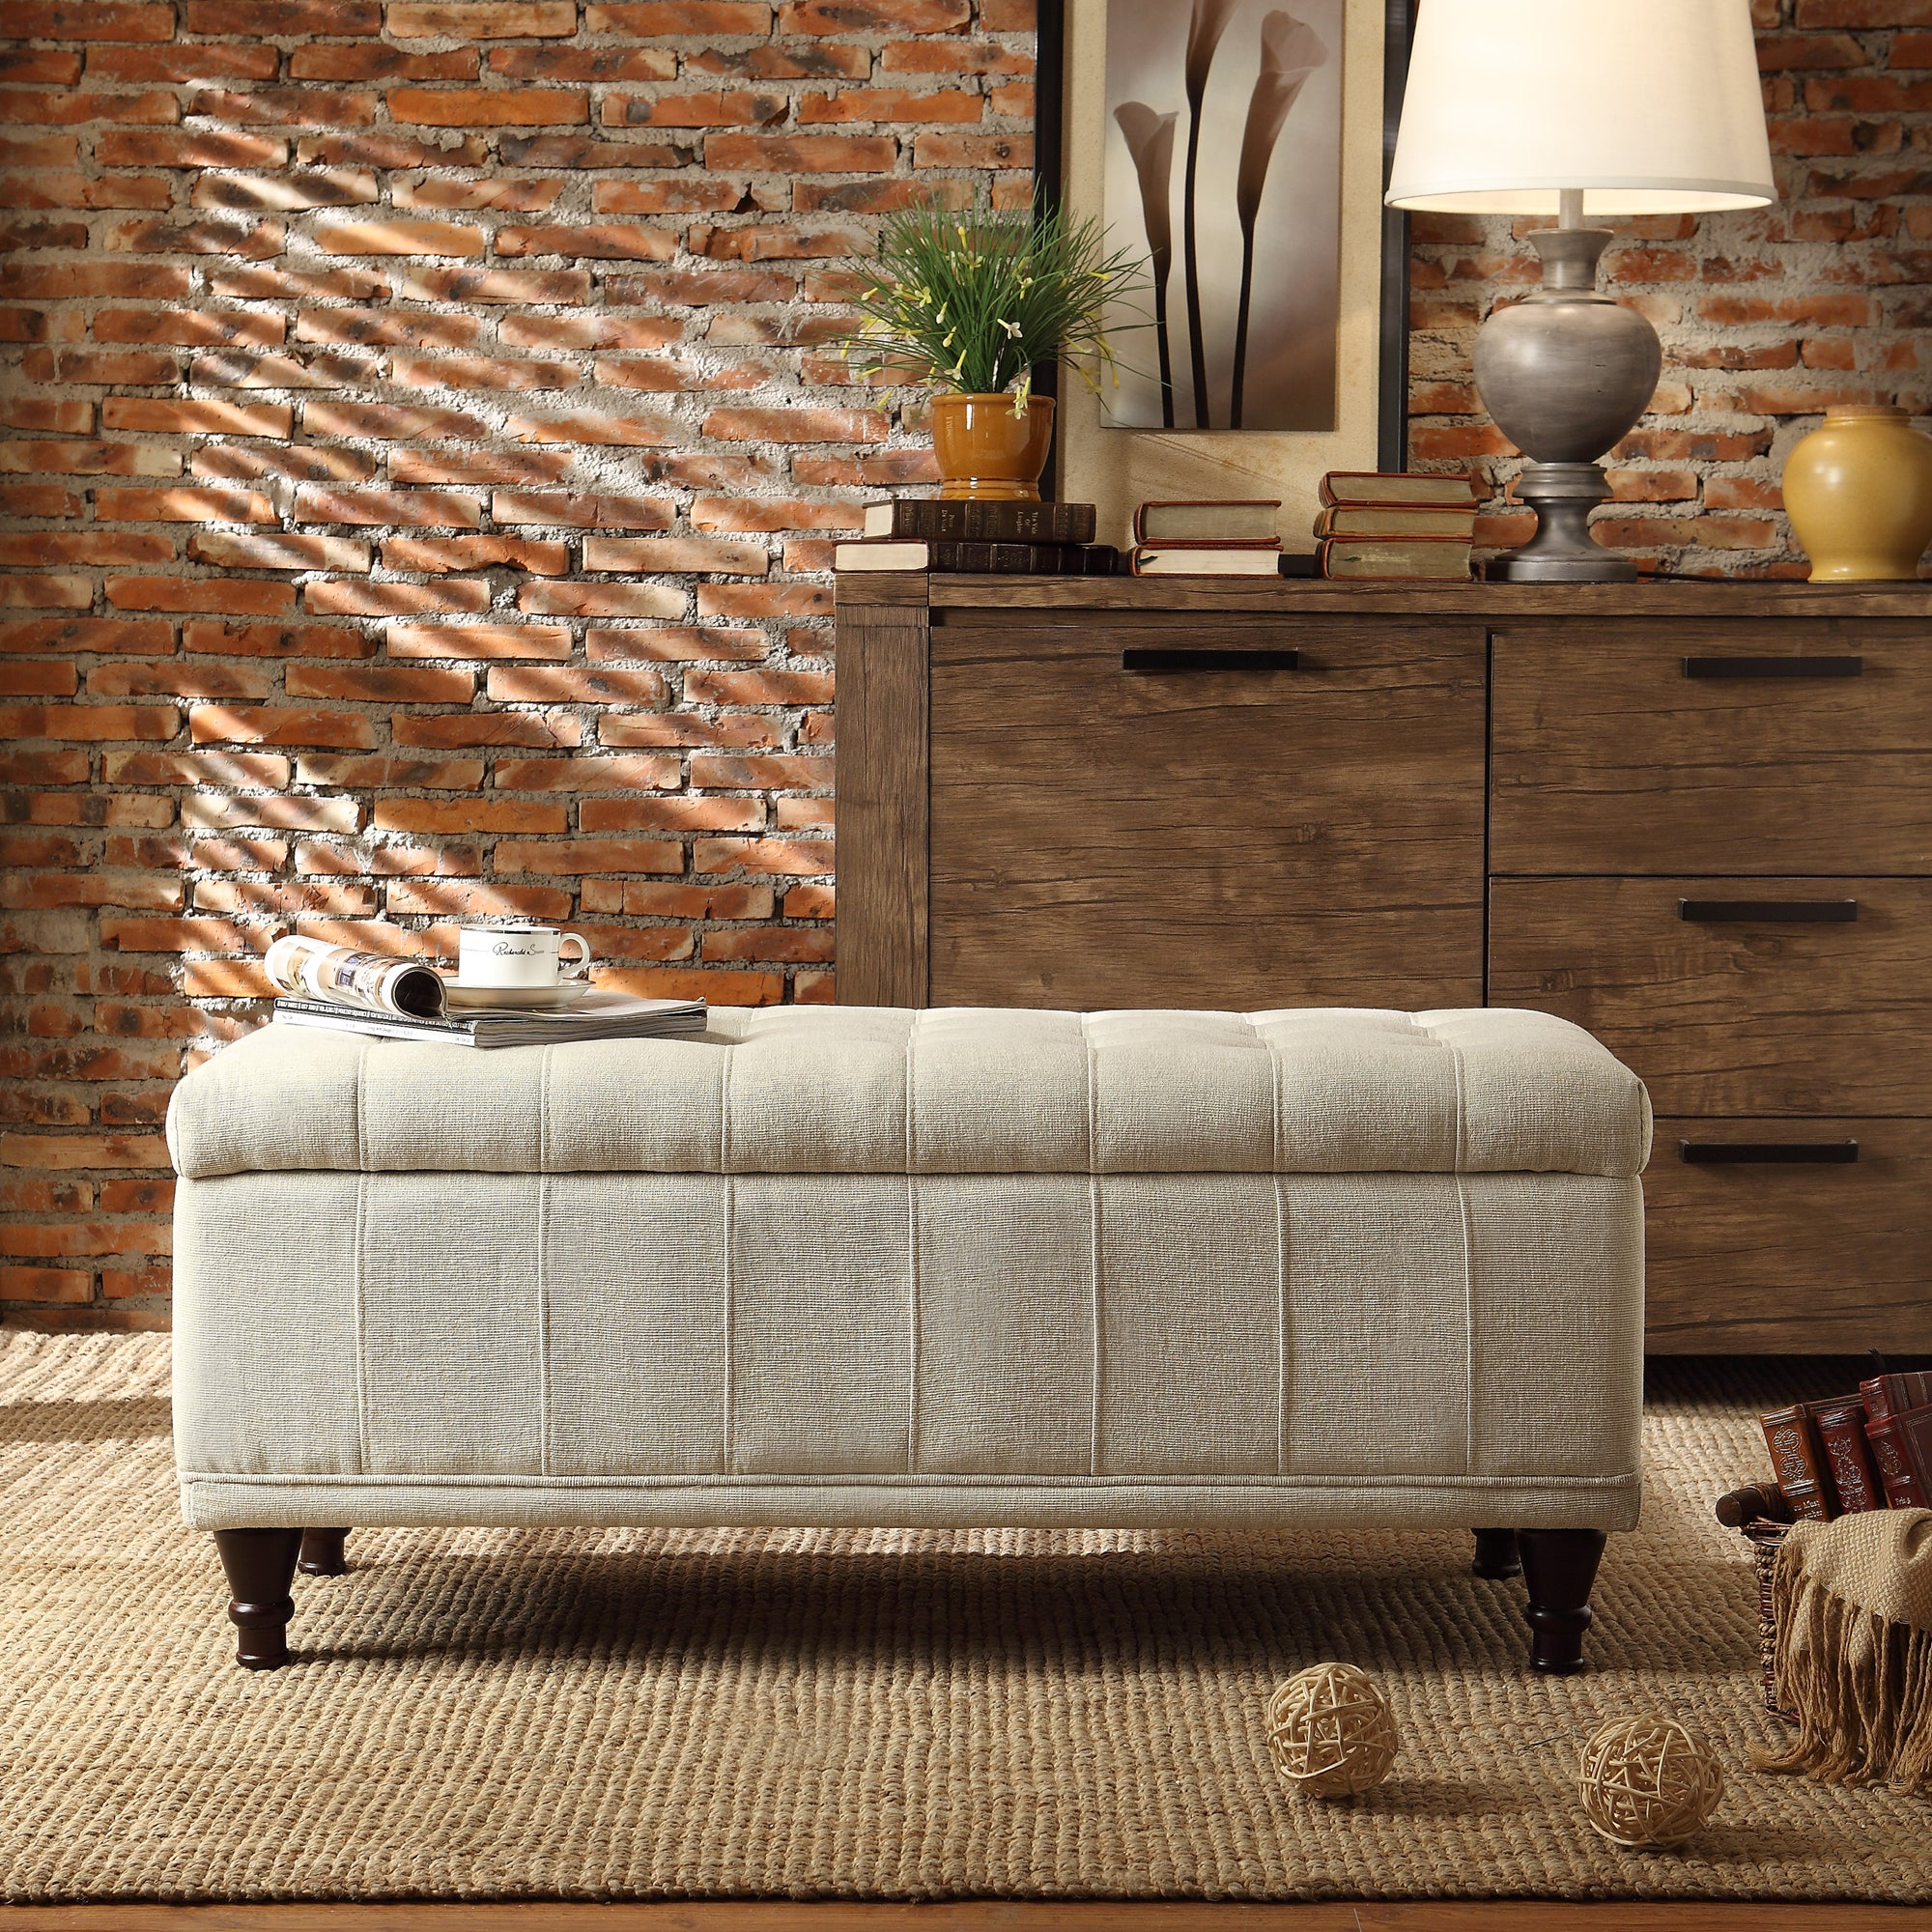 St Ives Lift Top Tufted Storage Bench by iNSPIRE Q Classic - Free Shipping  Today - Overstock.com - 14292575